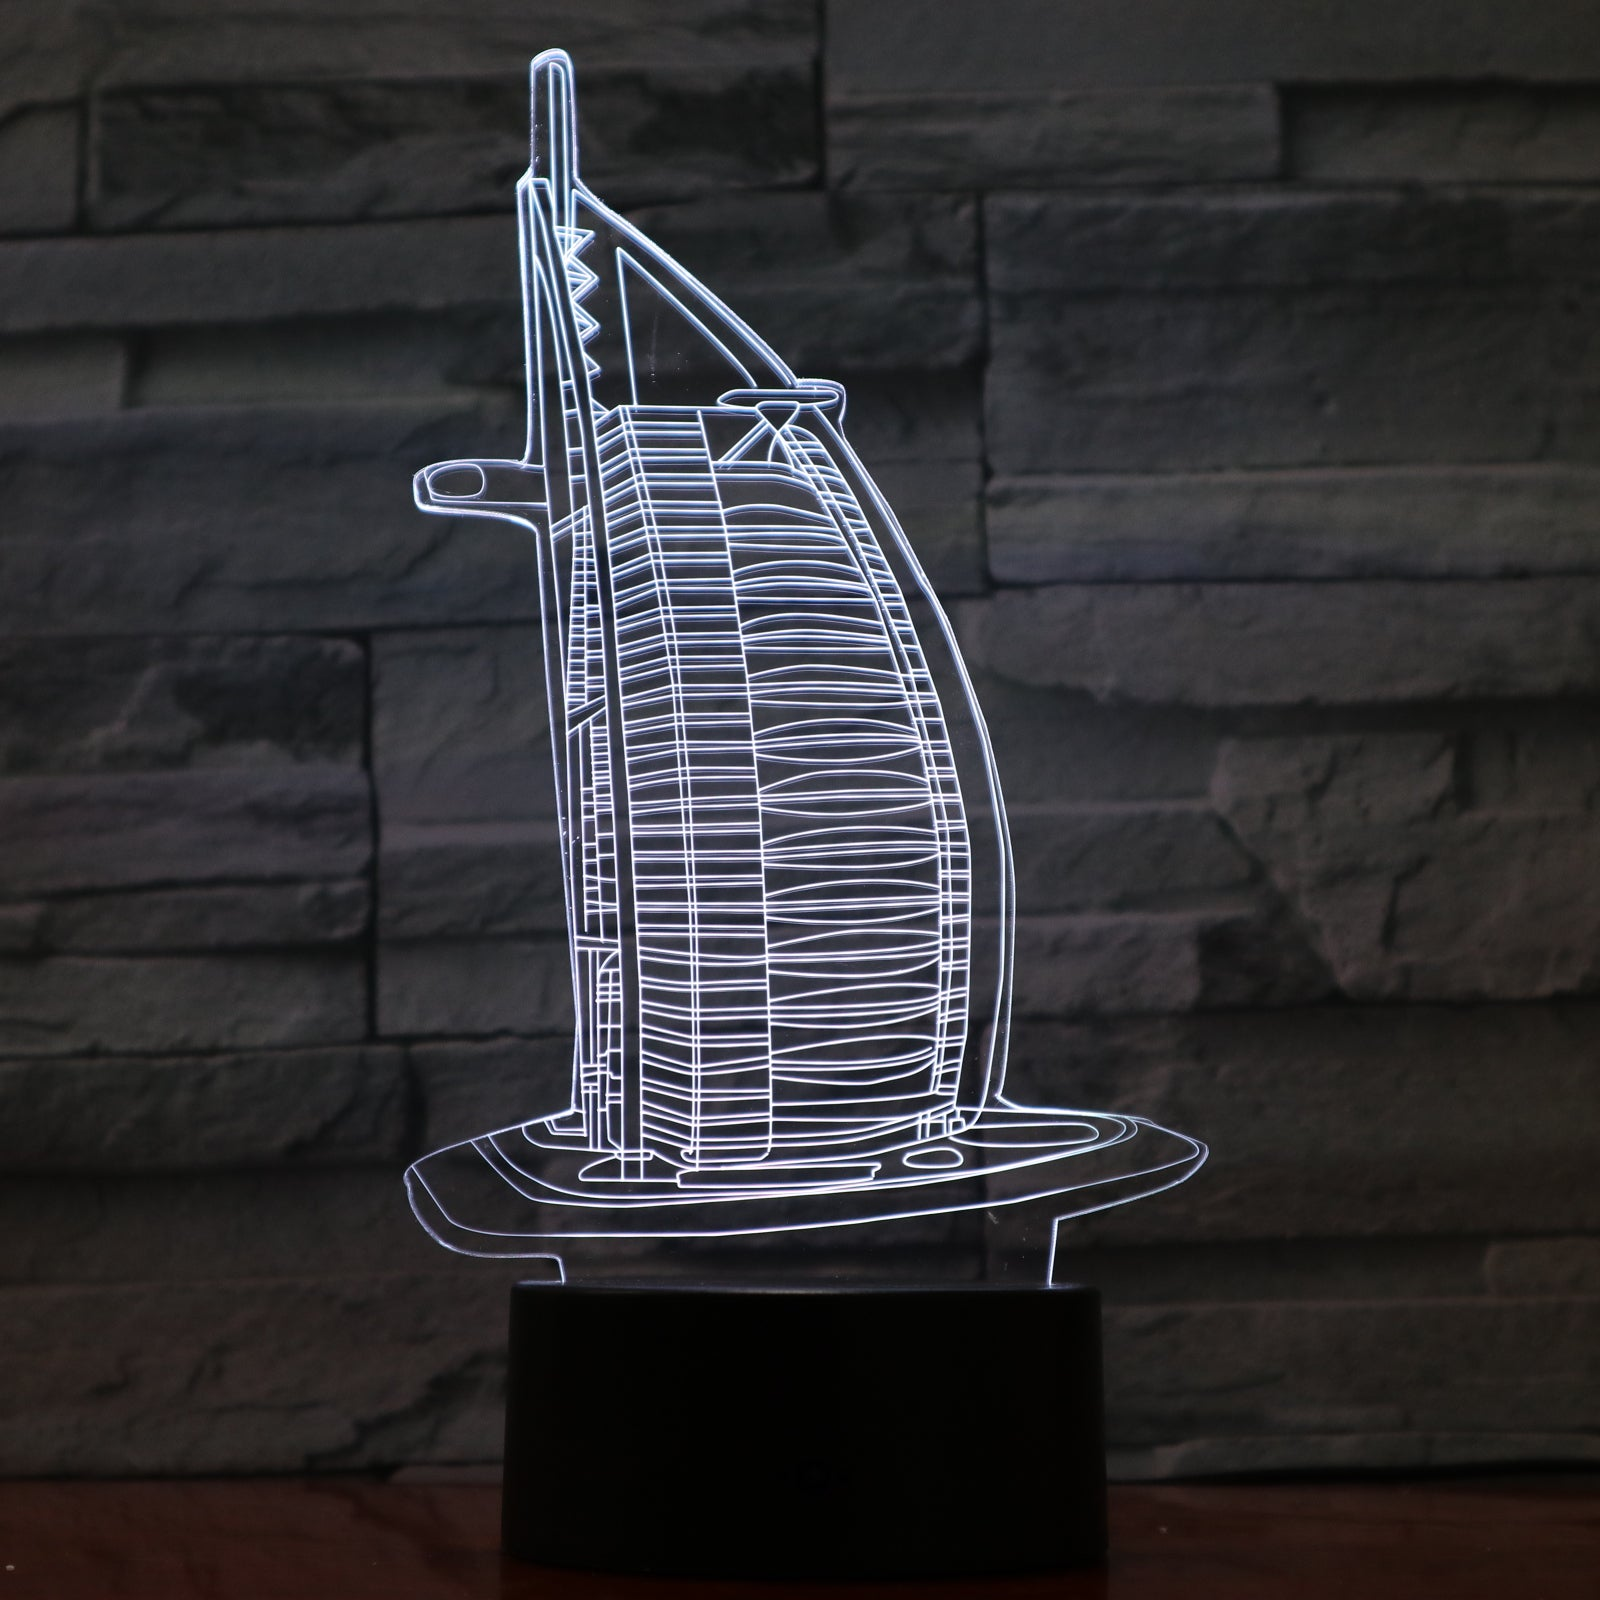 Burj Al Arab Building - 3D Optical Illusion LED Lamp Hologram